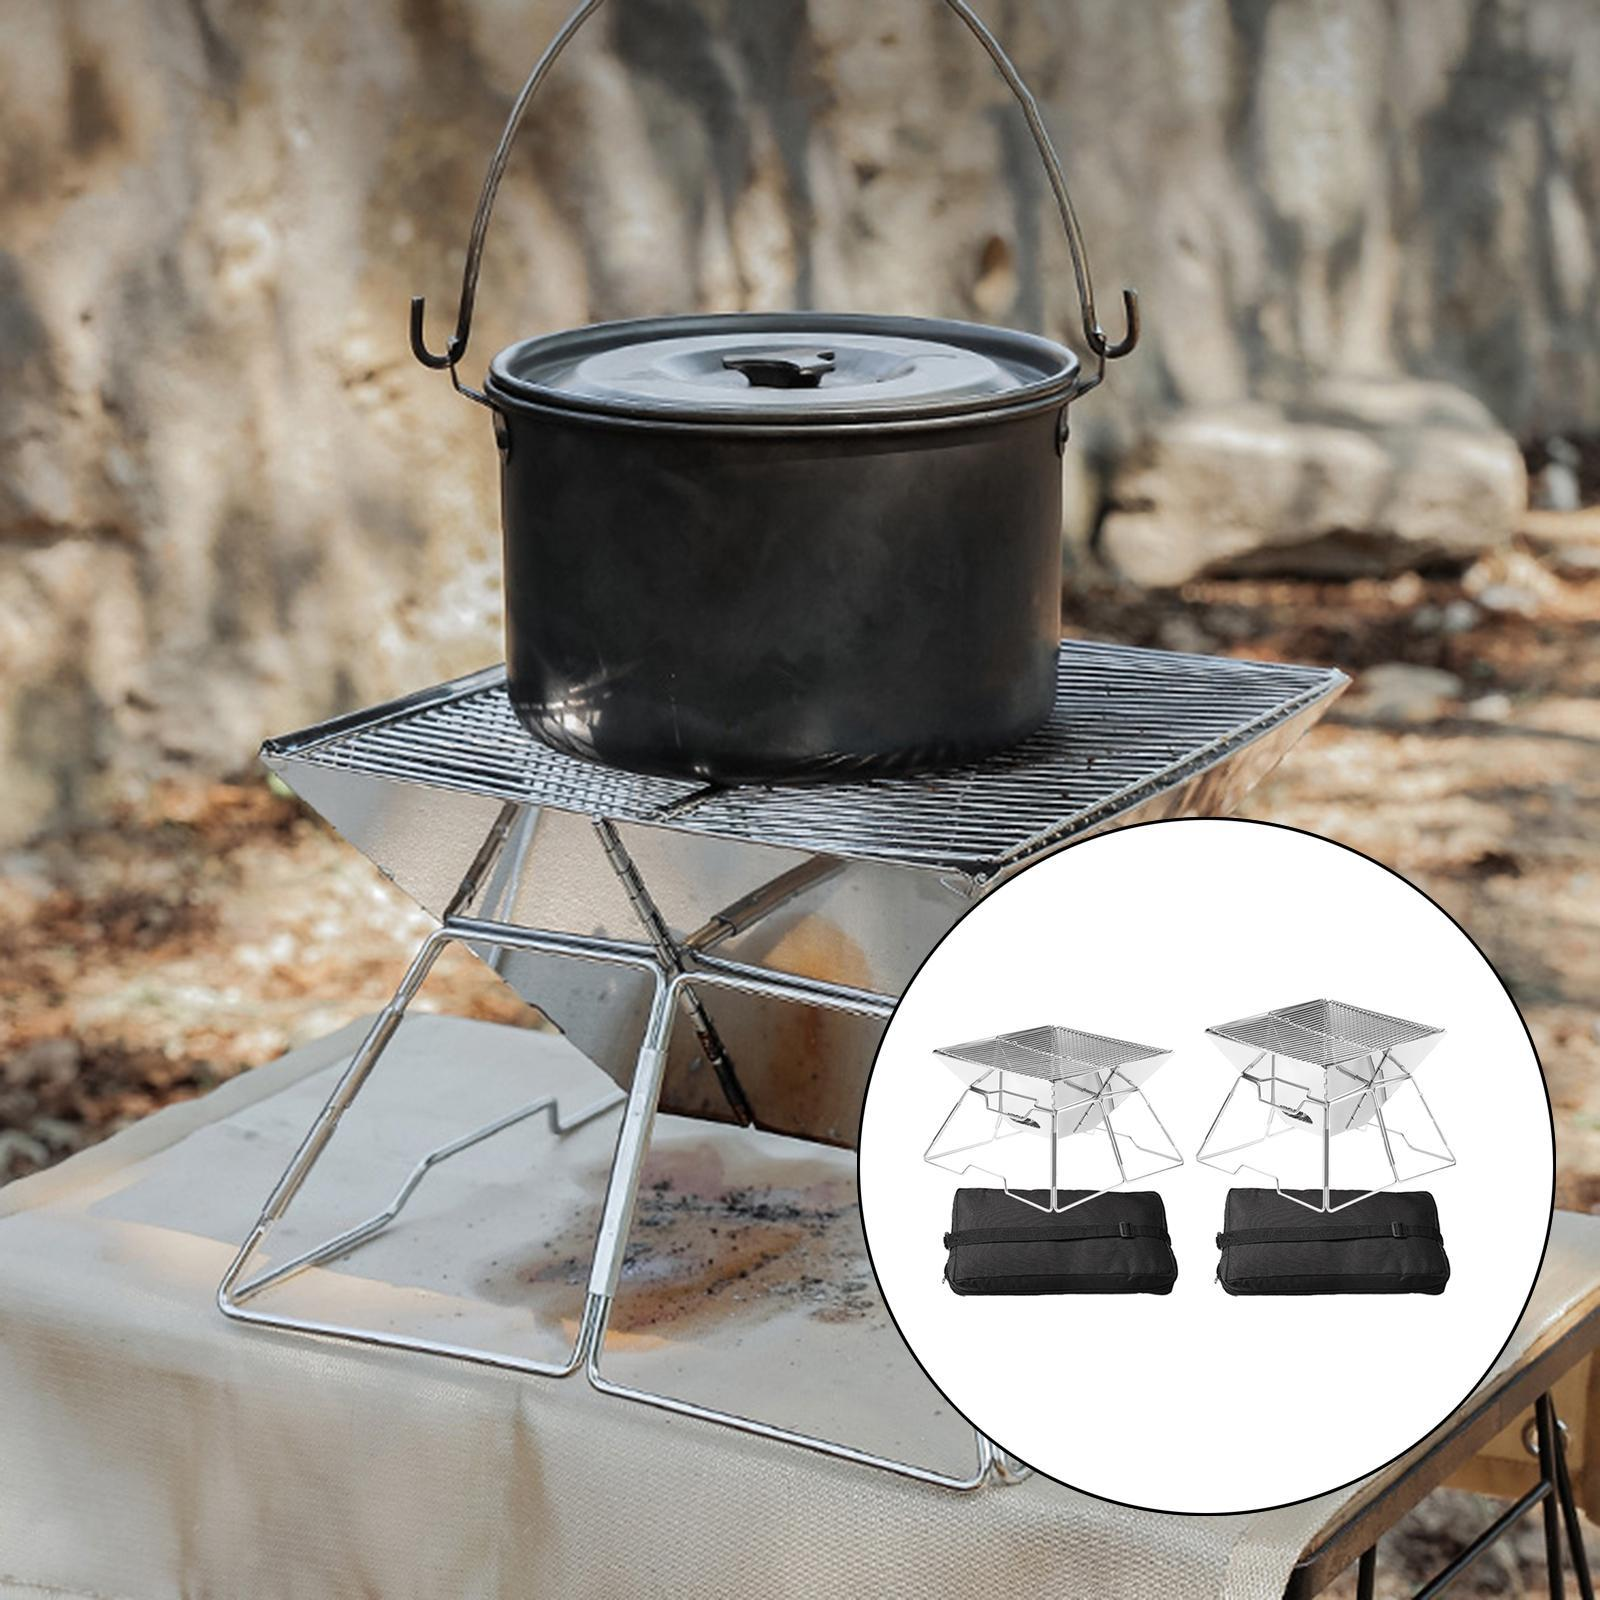 Folding Grill Stainless Steel Equipment Kabob Compact Charcoal Stove Picnic